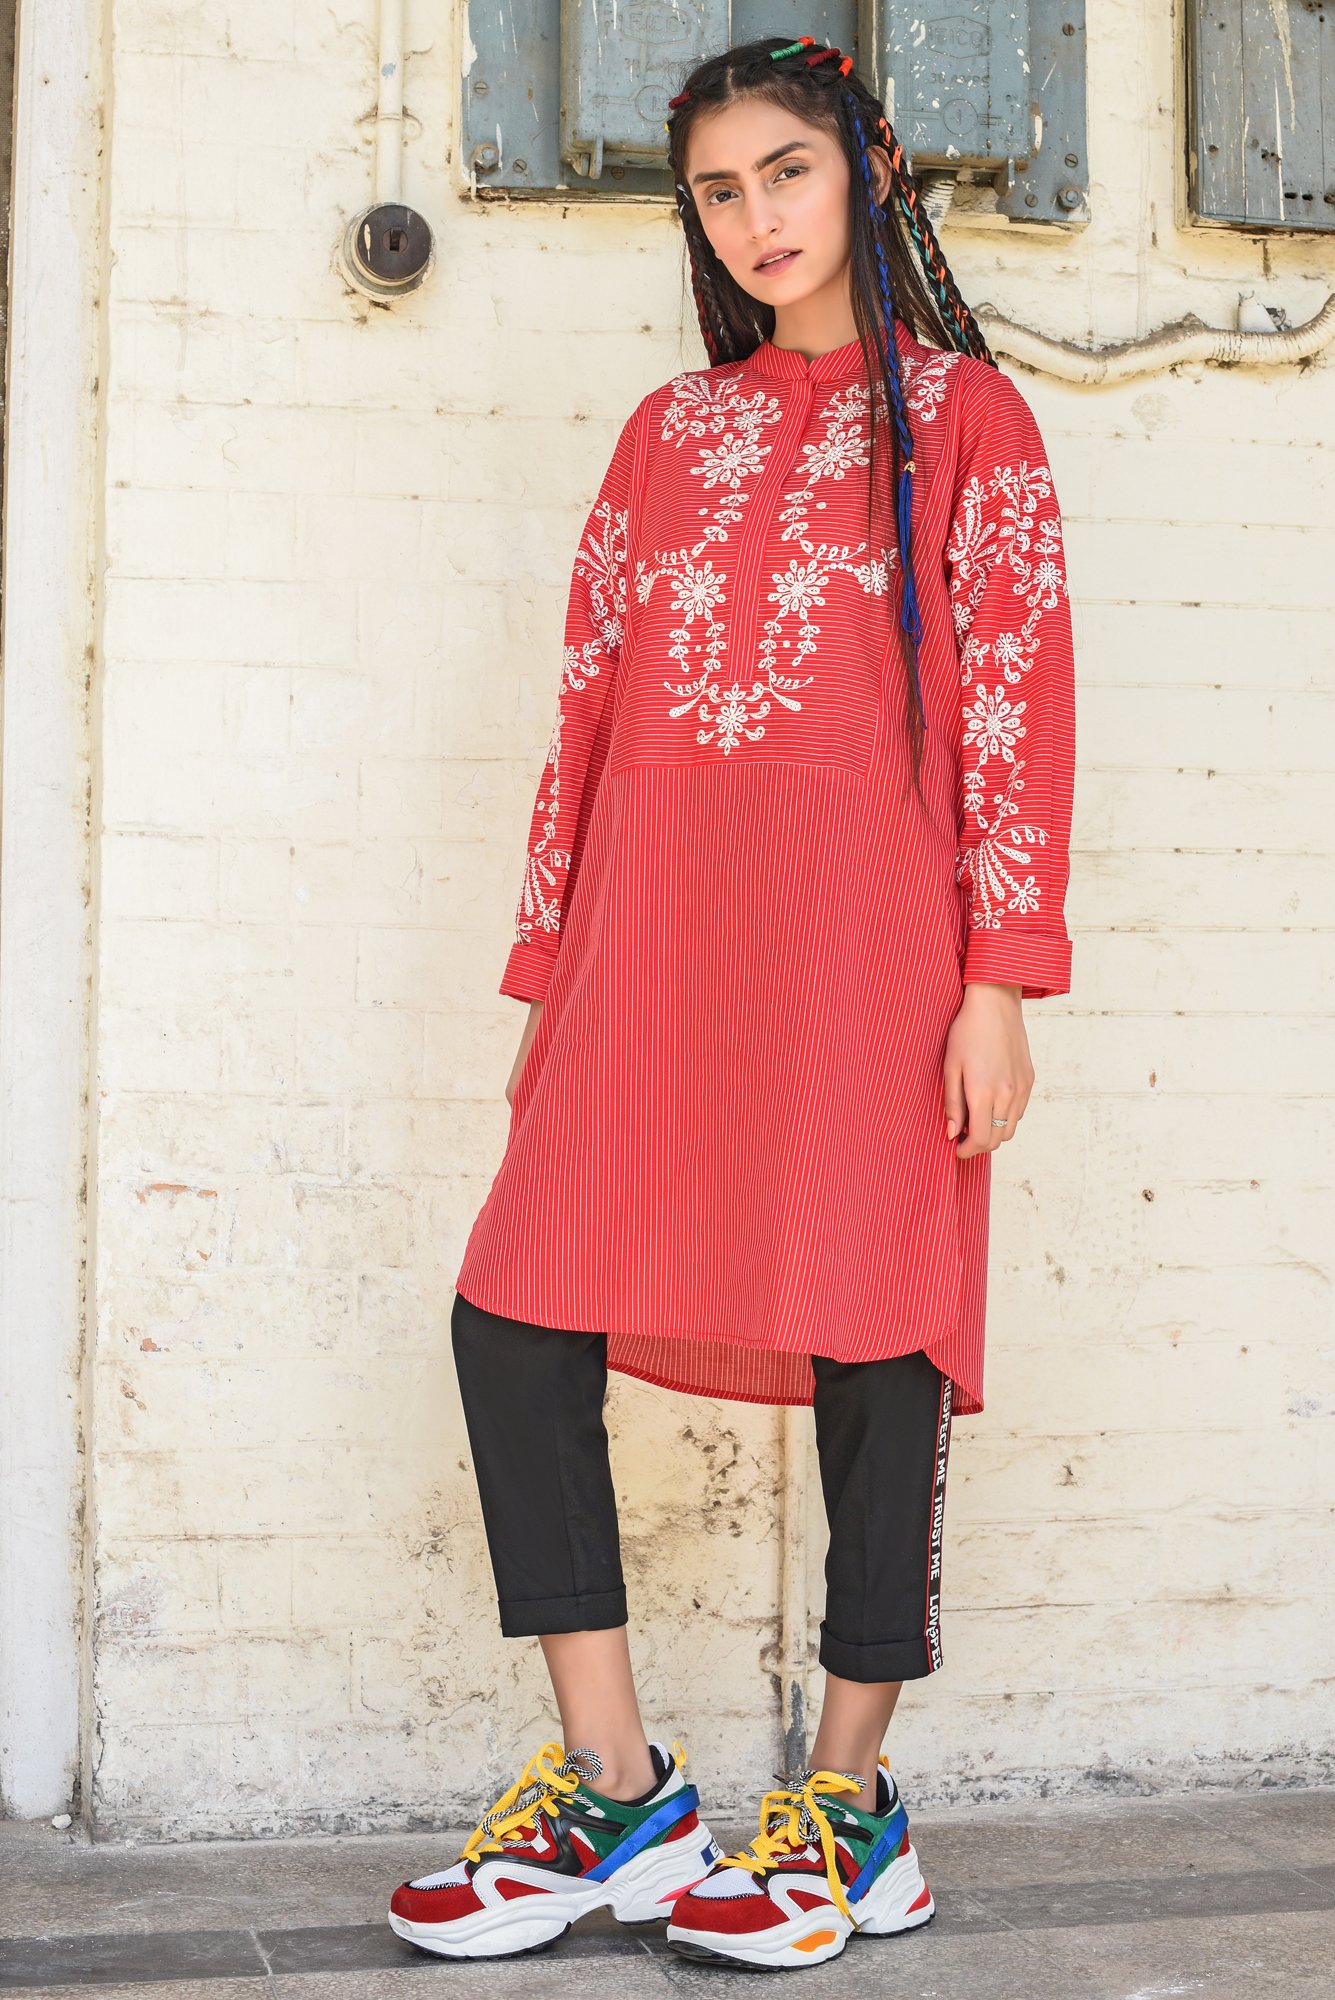 Outfitters Eid Collection 2021